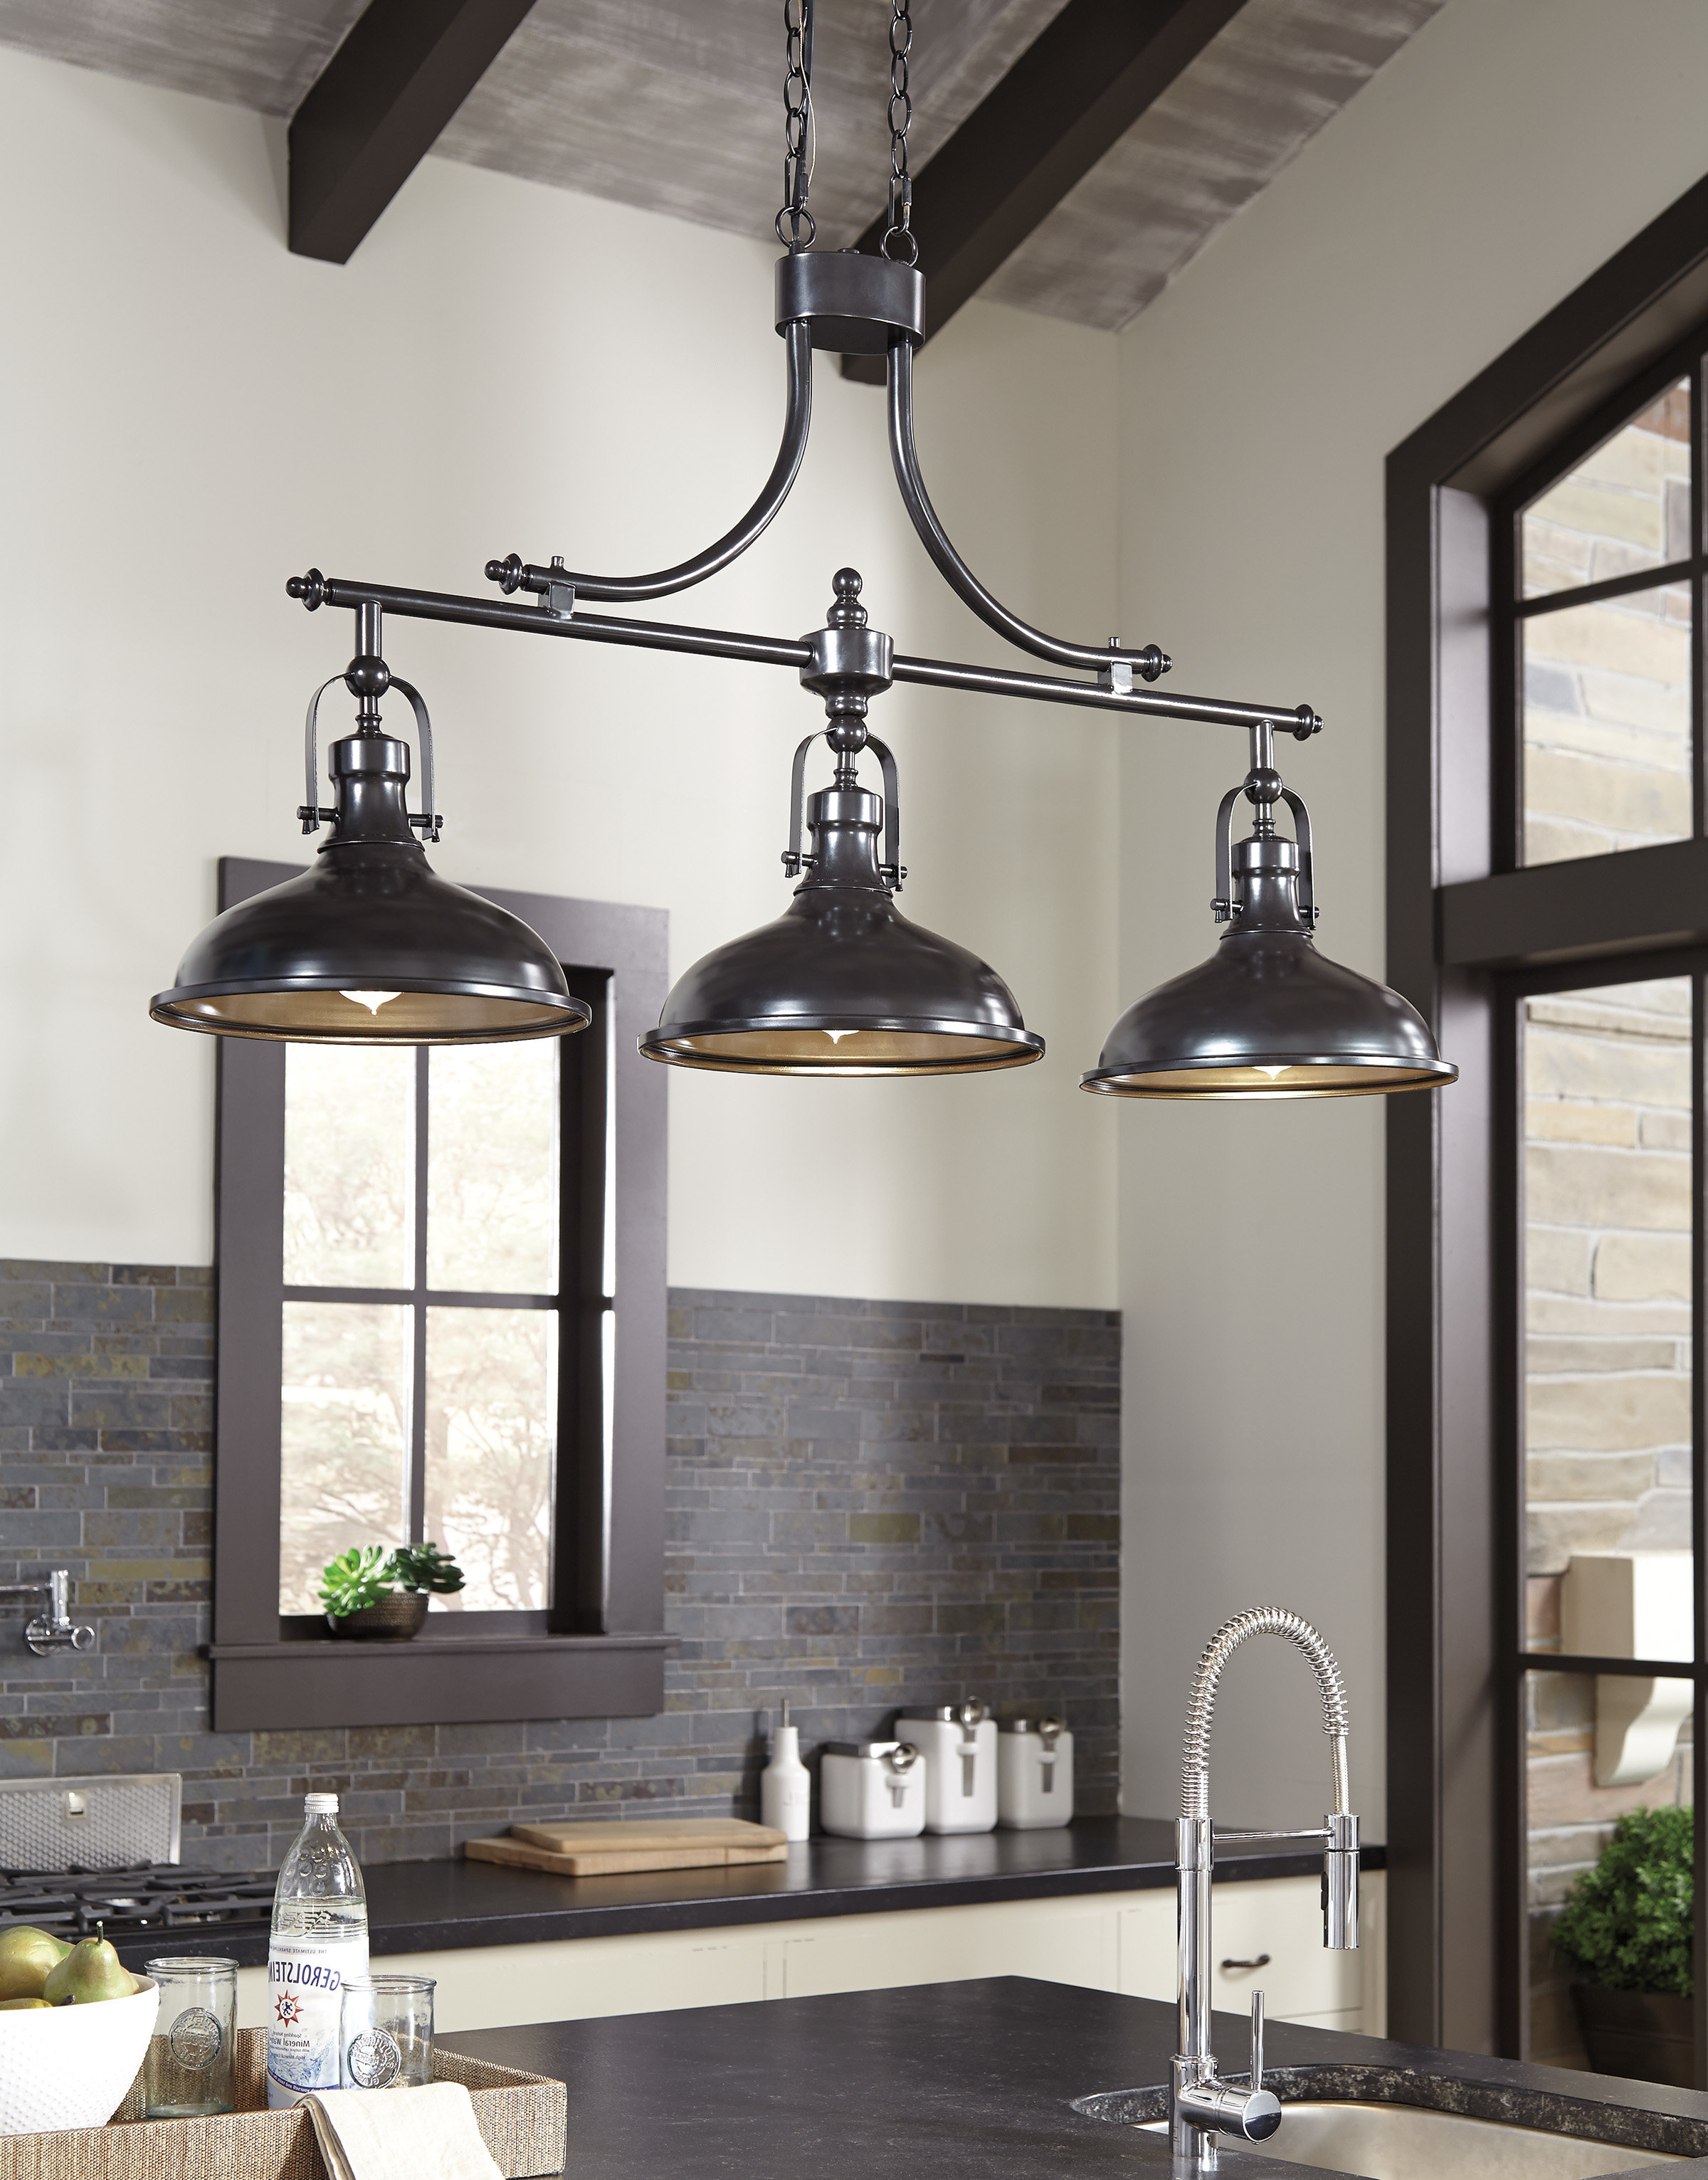 Well Liked Martinique 3 Light Kitchen Island Dome Pendant Pertaining To Martinique 3 Light Kitchen Island Dome Pendants (View 24 of 25)